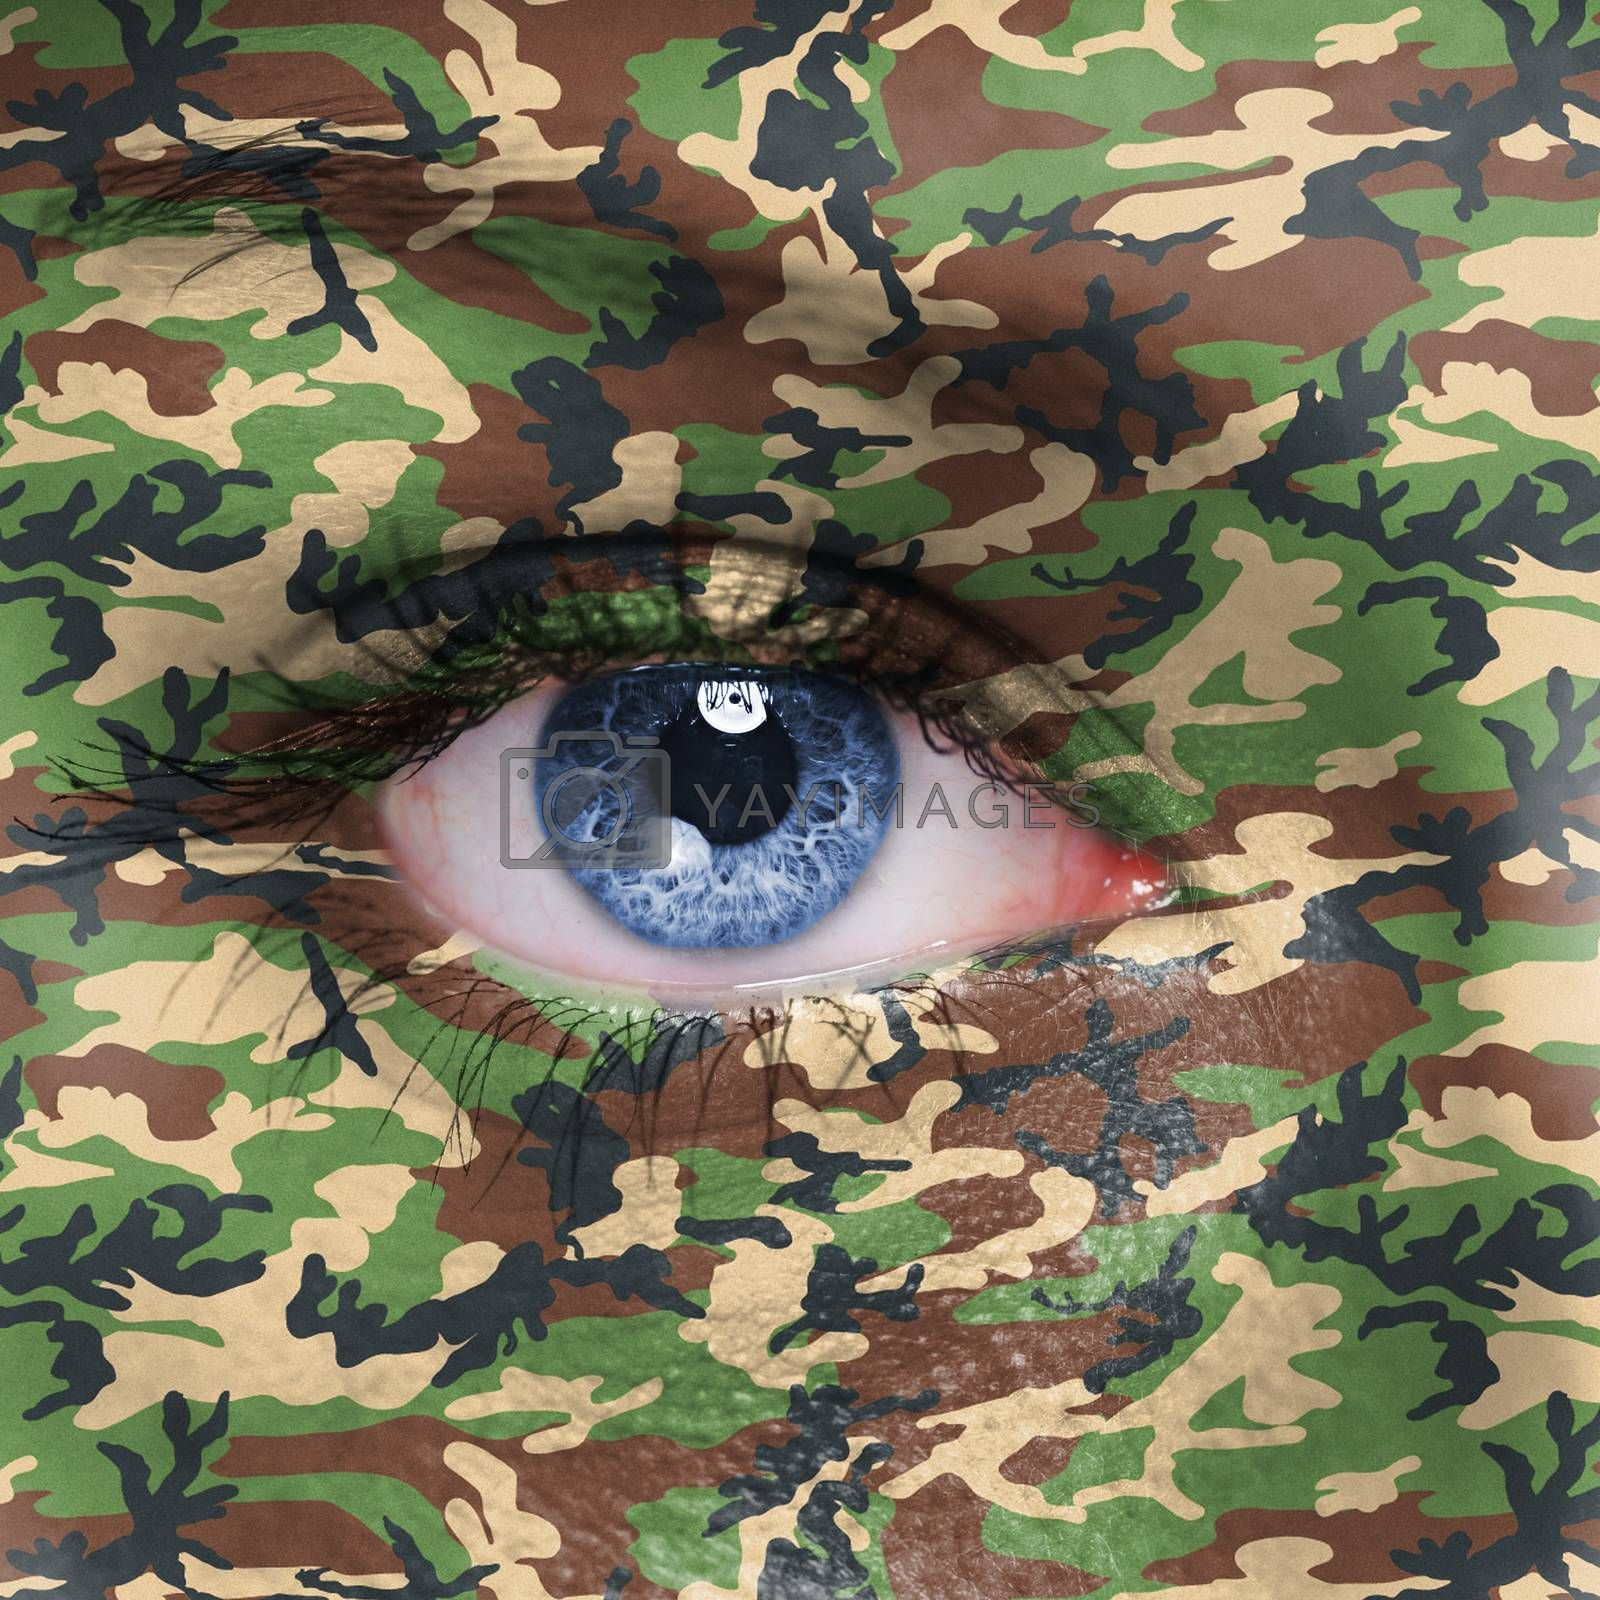 Jungle camouflage on human face